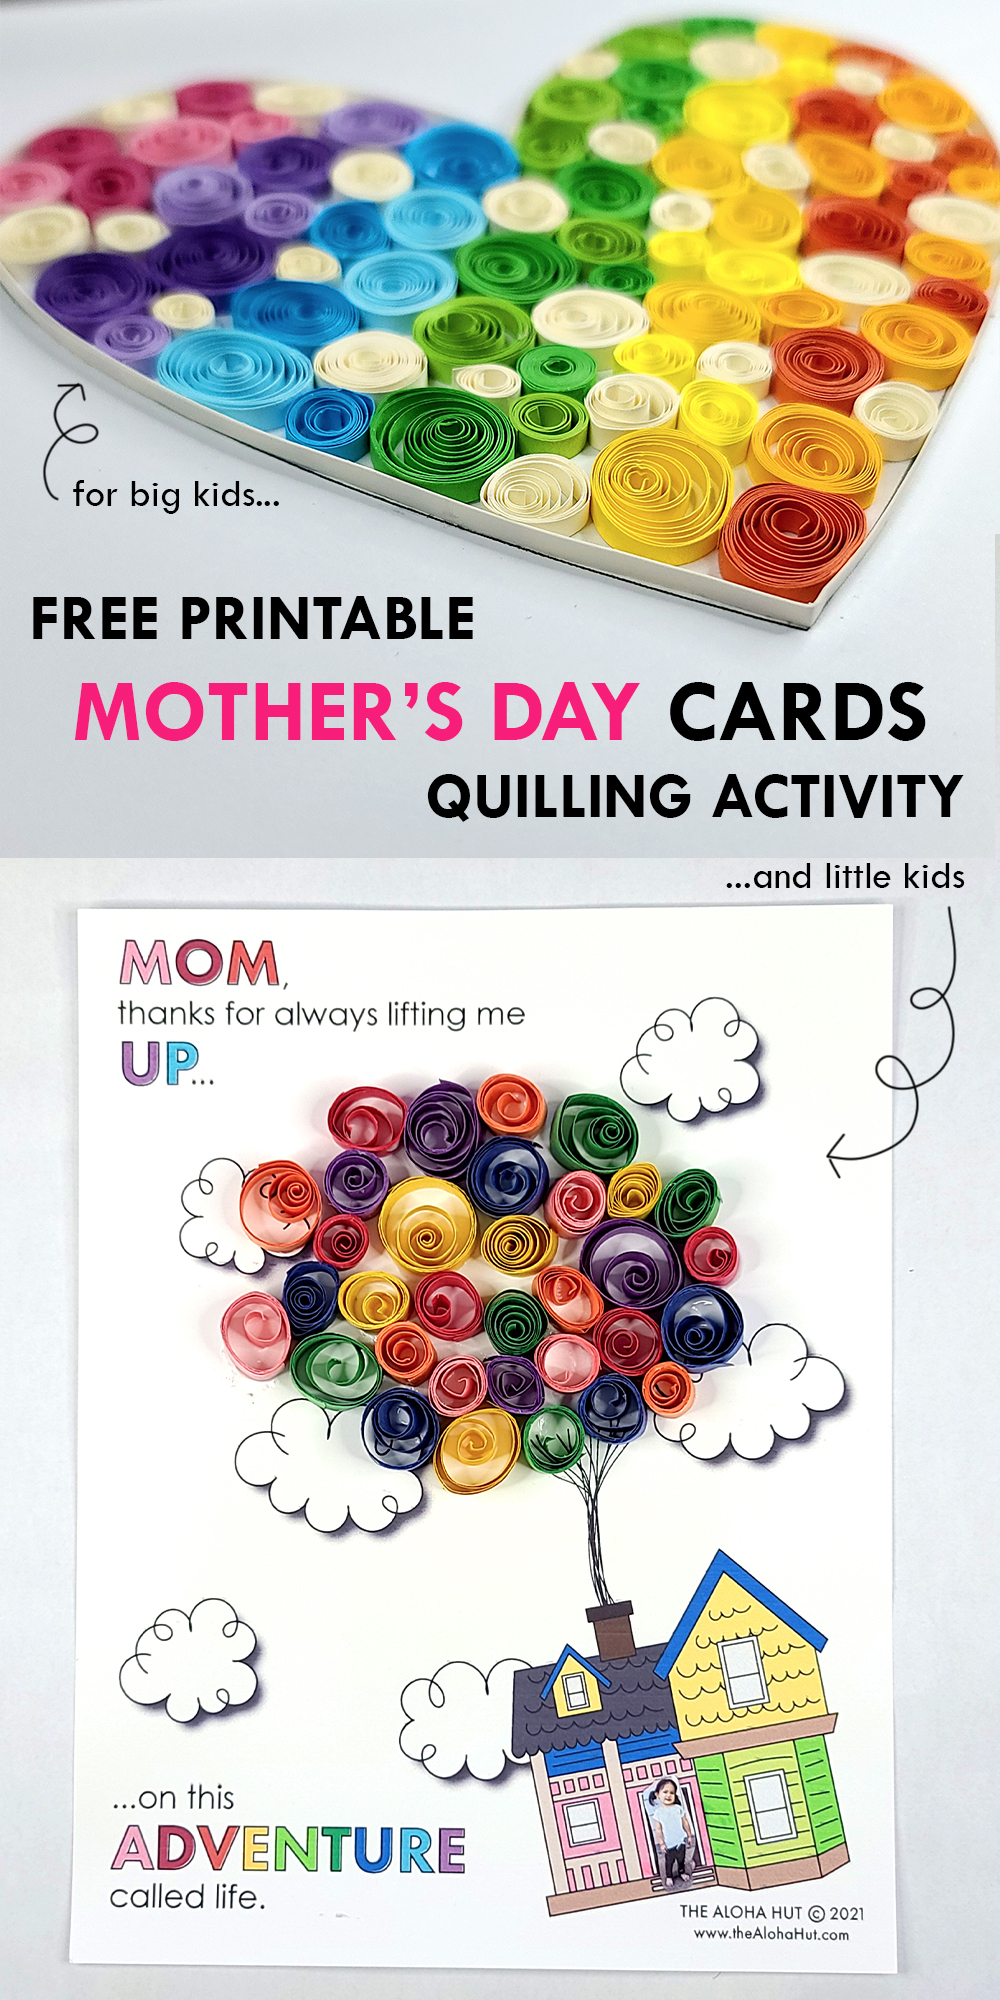 mother's day cards quilling activity by the Aloha Hut